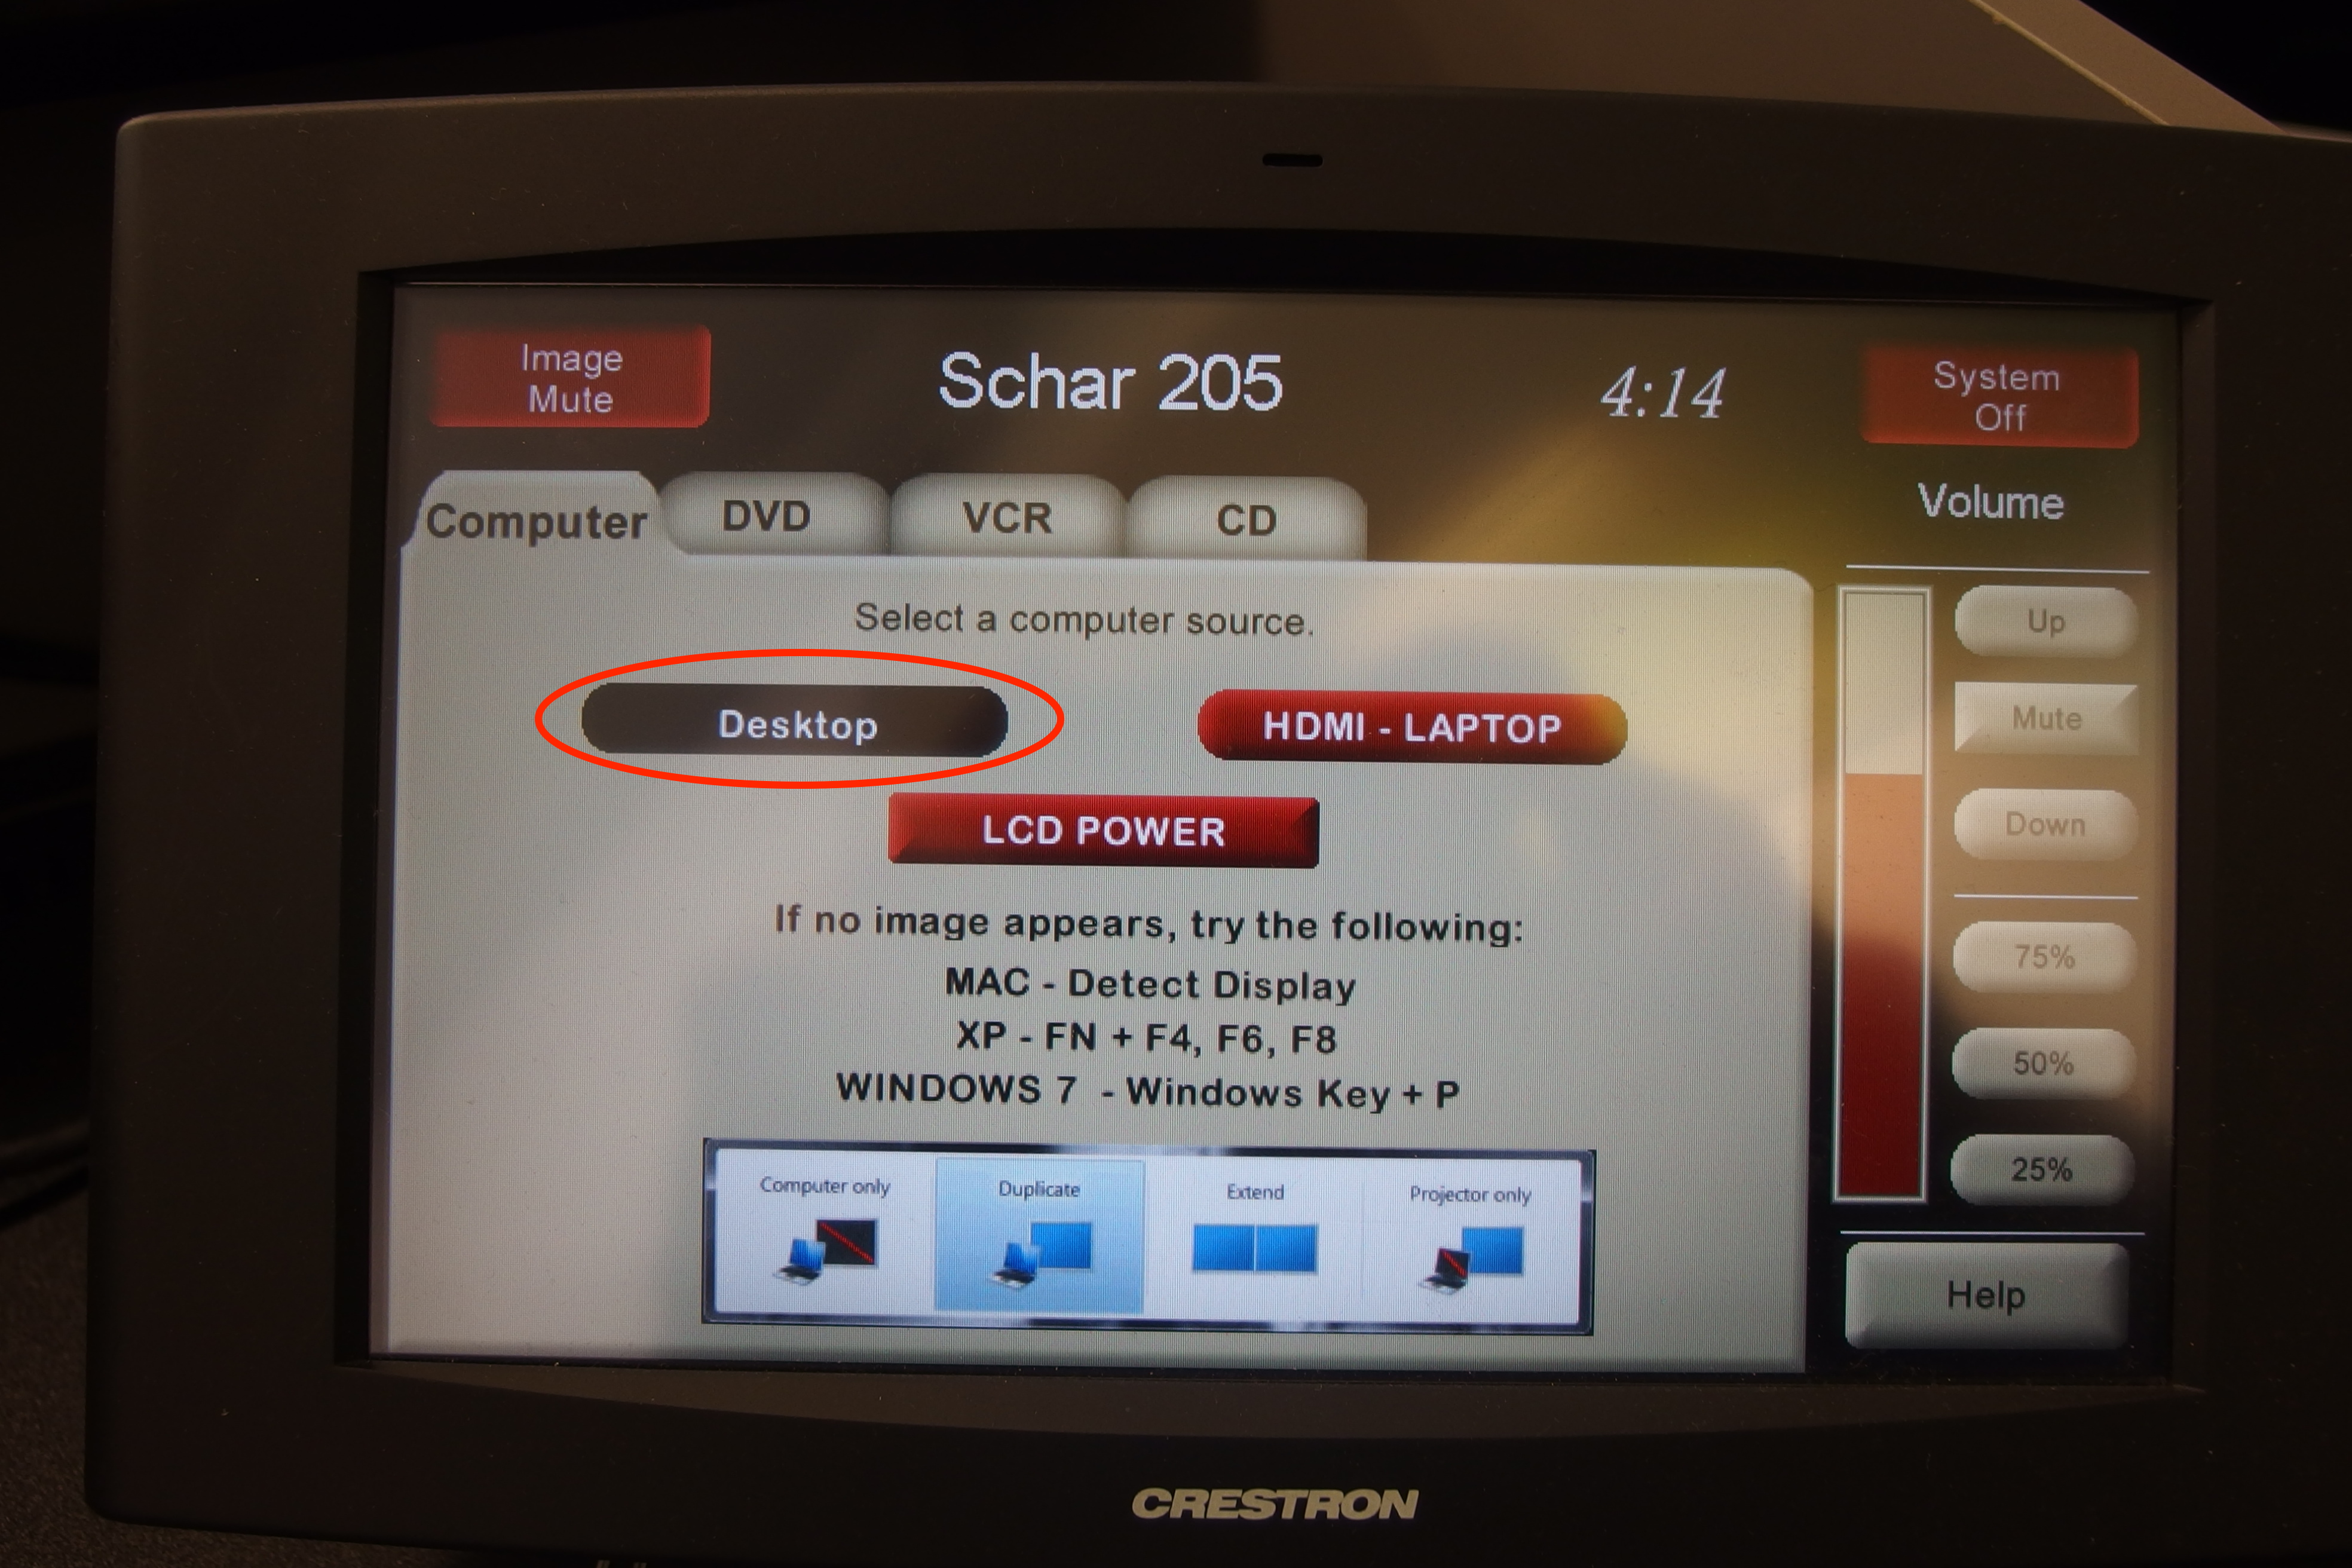 A photo of the touch panel with the desktop selection circled.